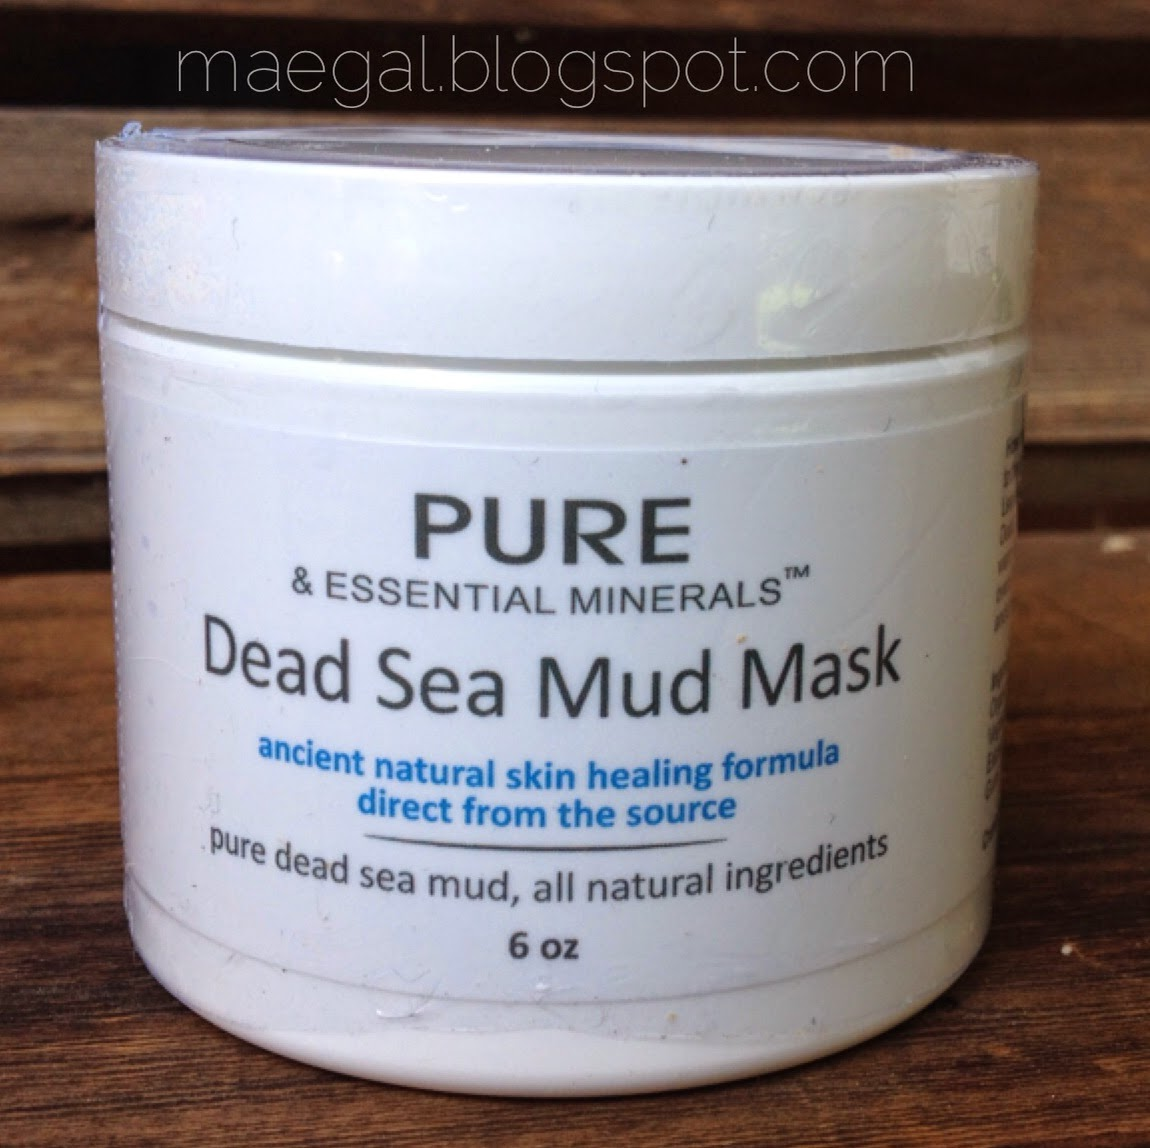 pure dead sea mud mask | maegal.blogspot.com